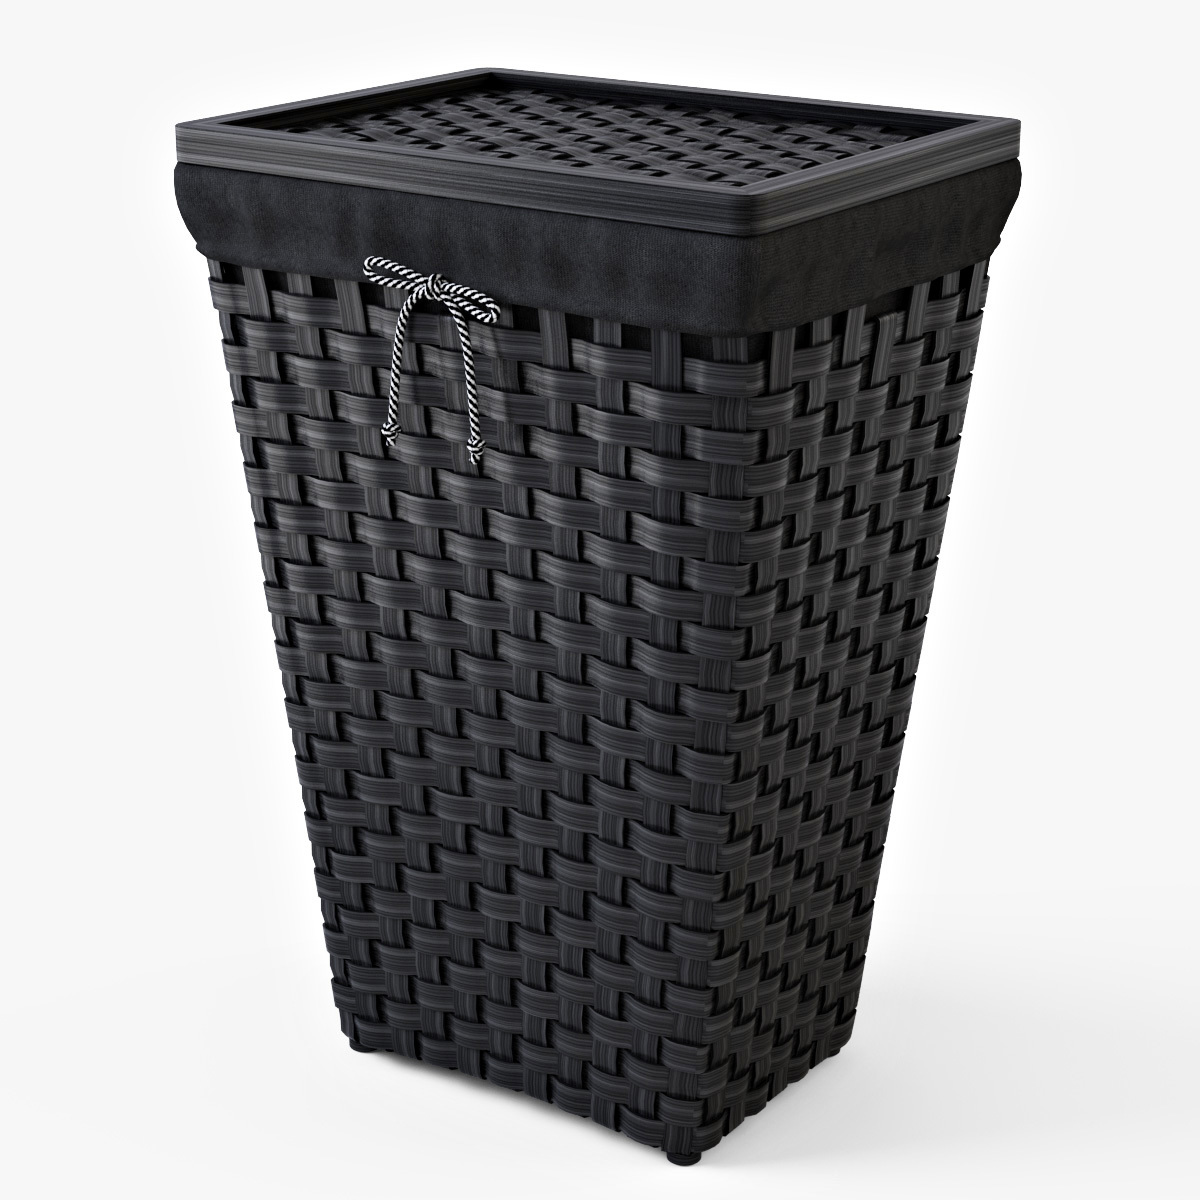 laundry basket ikea knarra by markelos 3docean. Black Bedroom Furniture Sets. Home Design Ideas